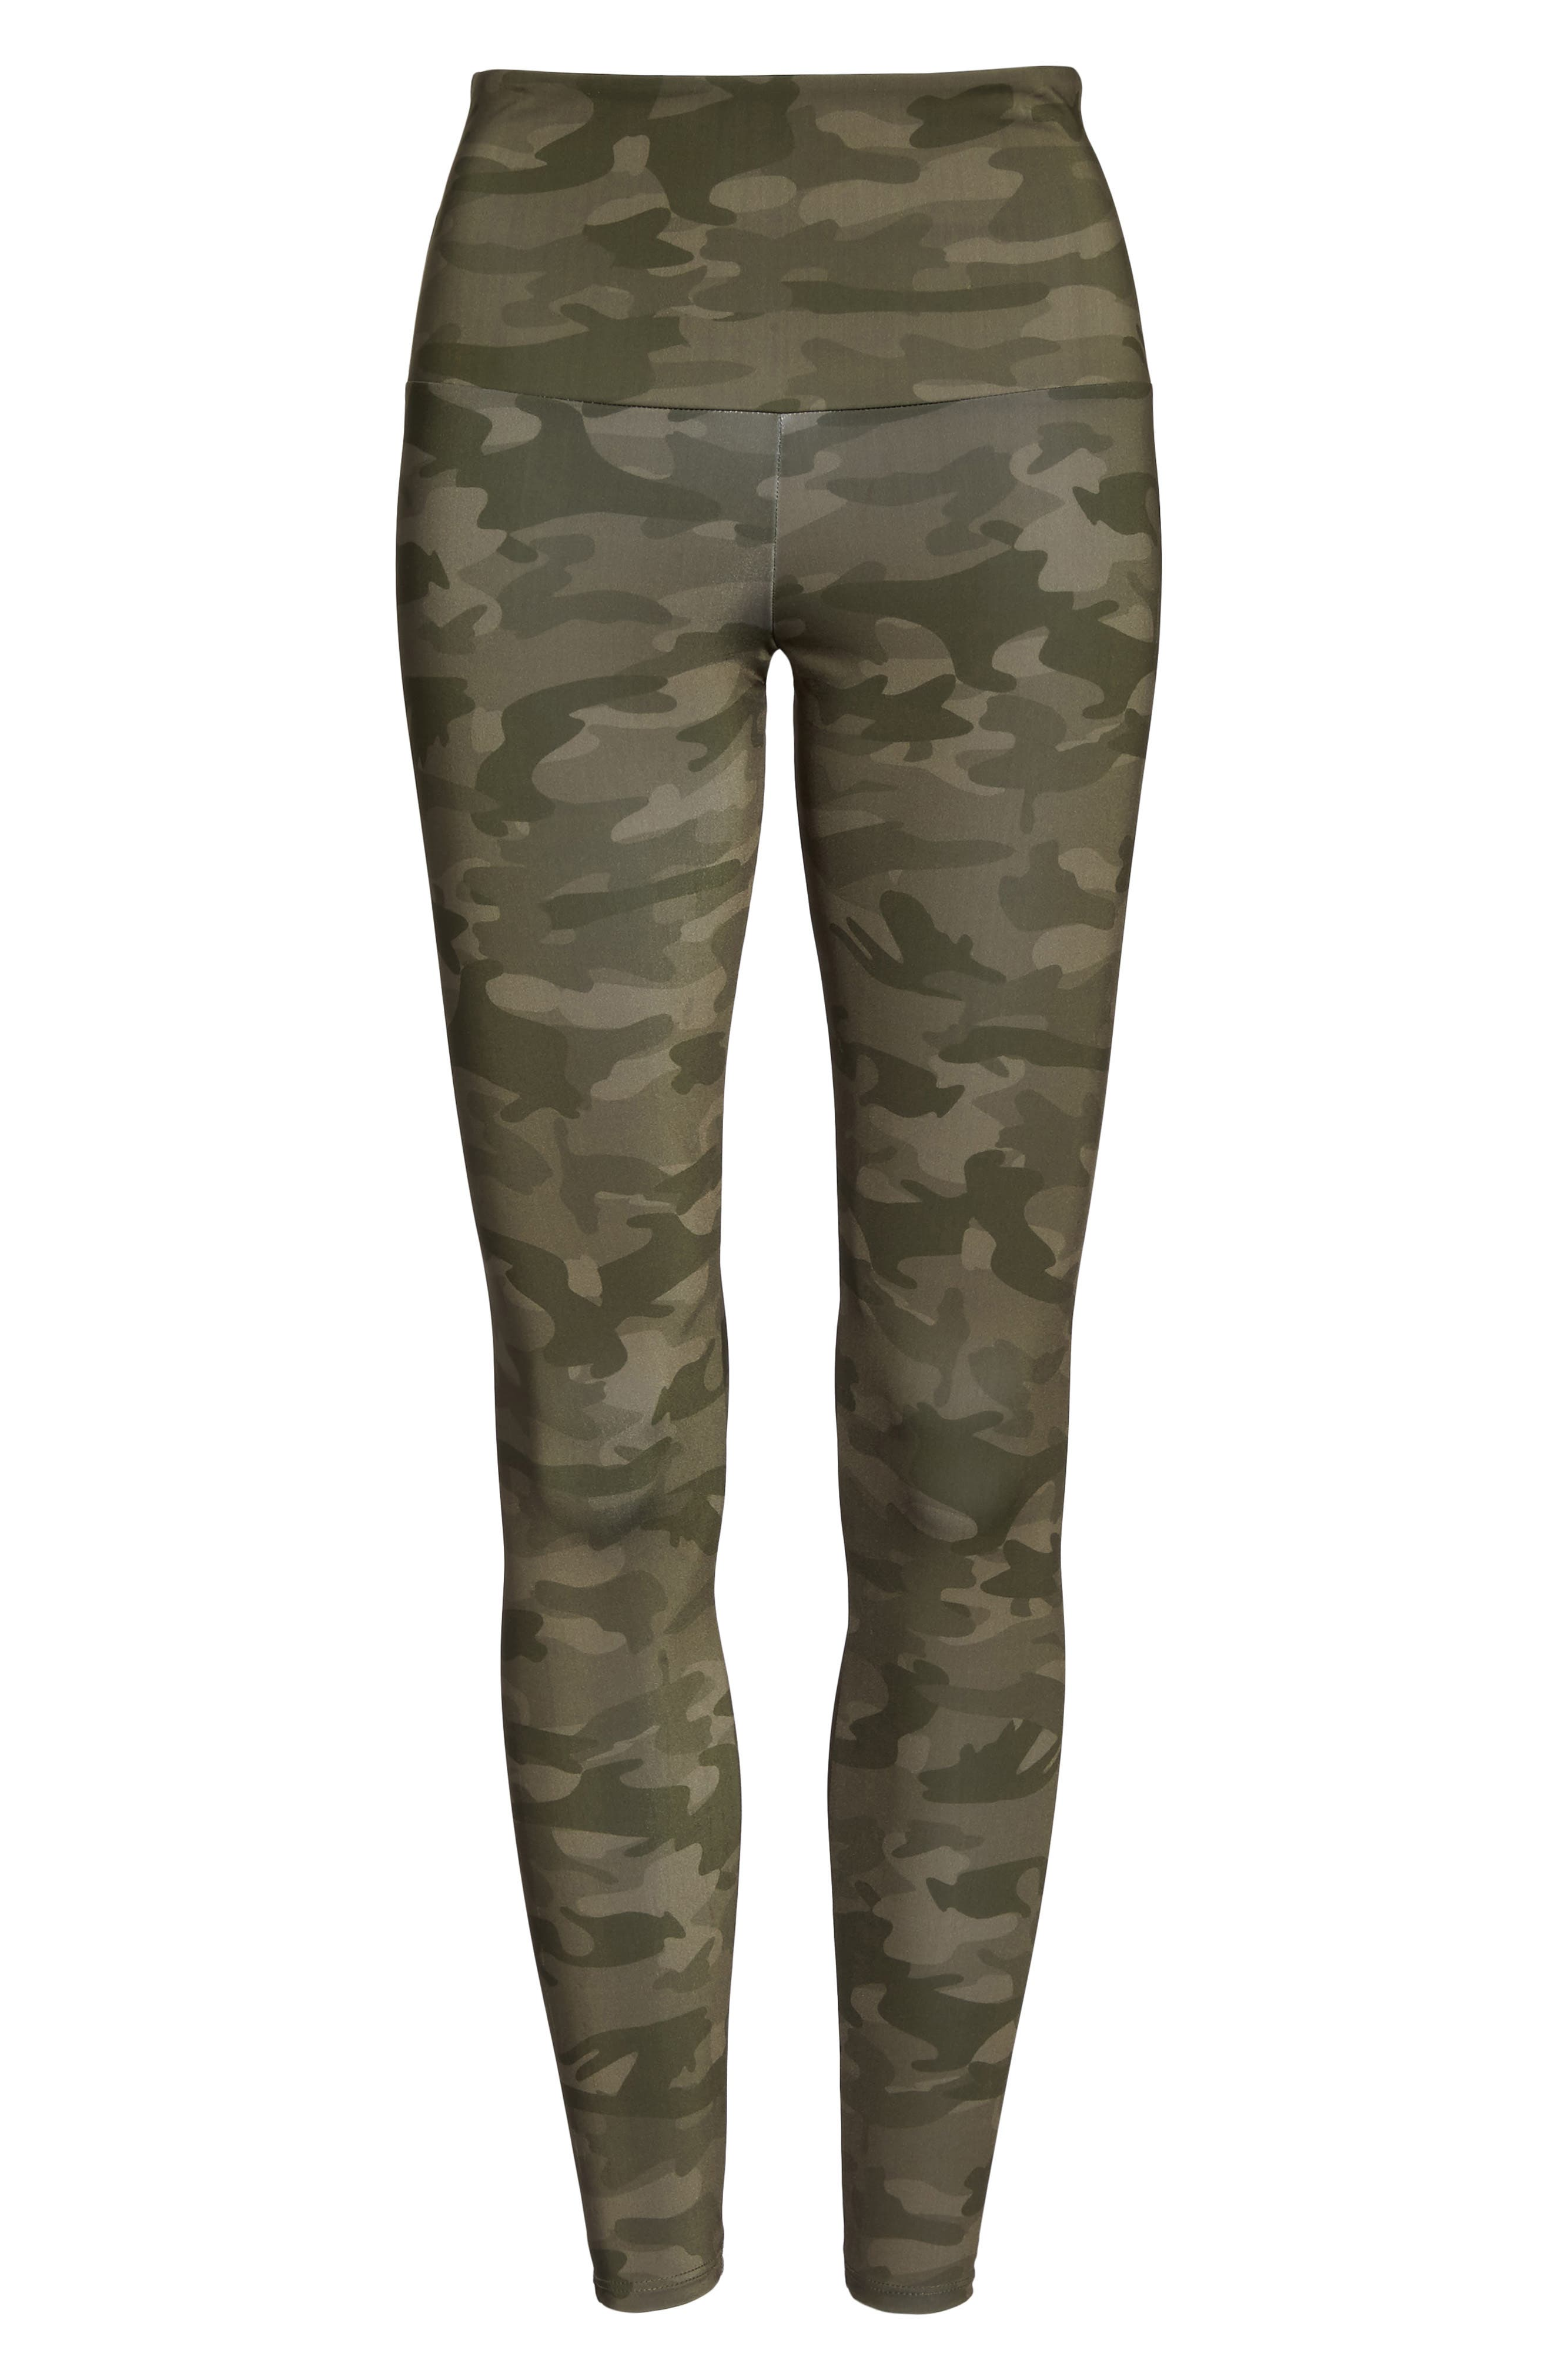 High Waist Print Leggings,                             Alternate thumbnail 7, color,                             MOSS CAMO